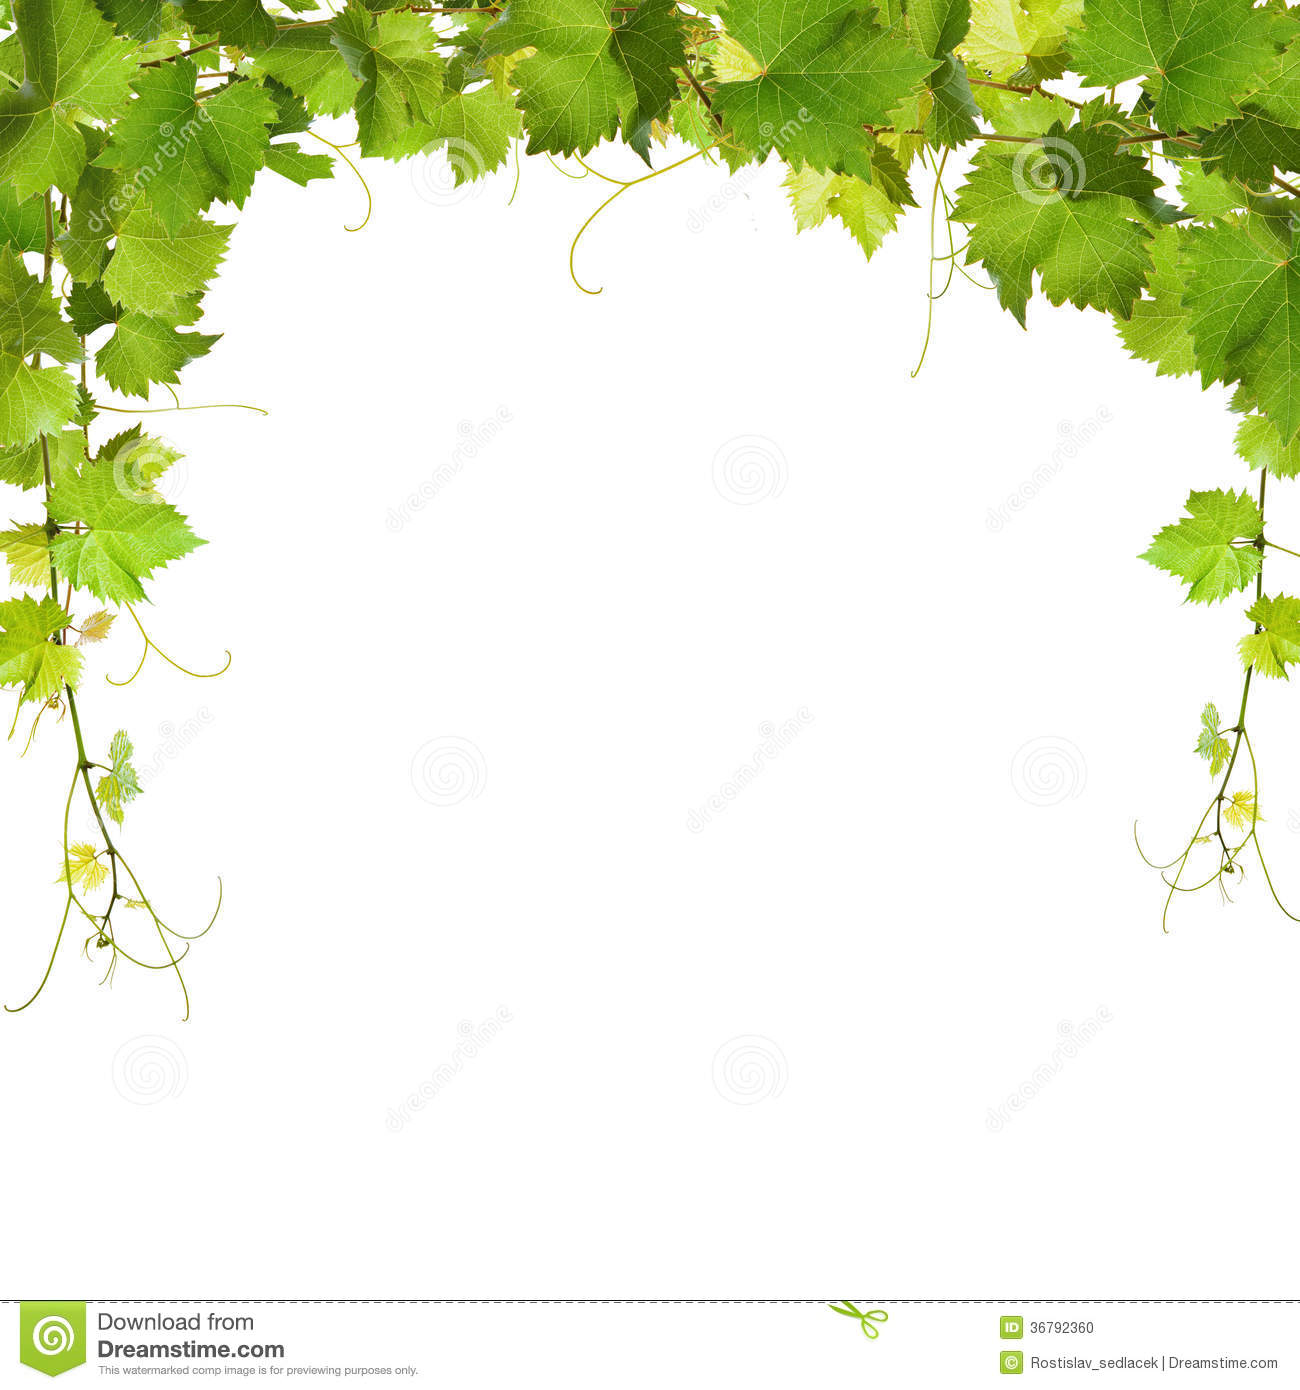 Bunch Of Green Vine Leaves And Grapes Stock Photo